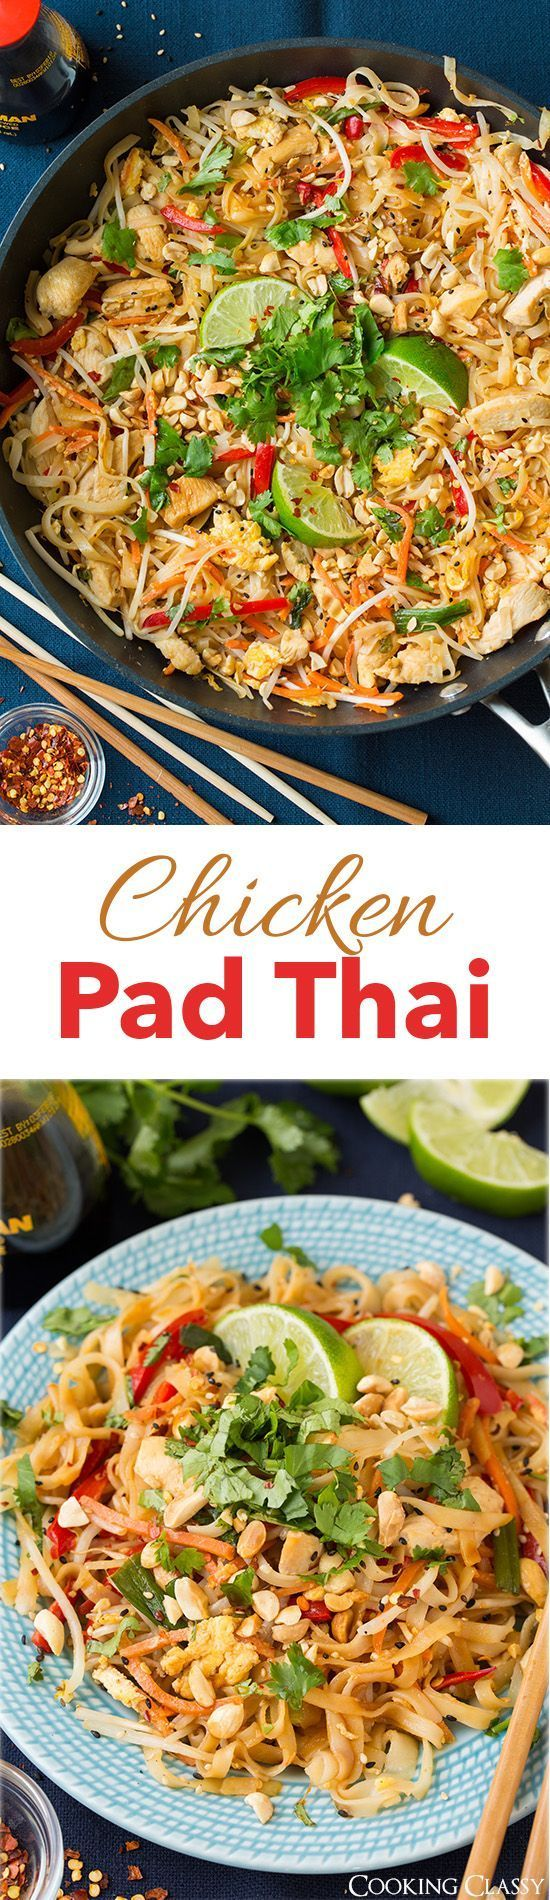 Chicken pad thai this is so so good we kept going back for more chicken pad thai this is so so good we kept going back for more thai food recipes forumfinder Images